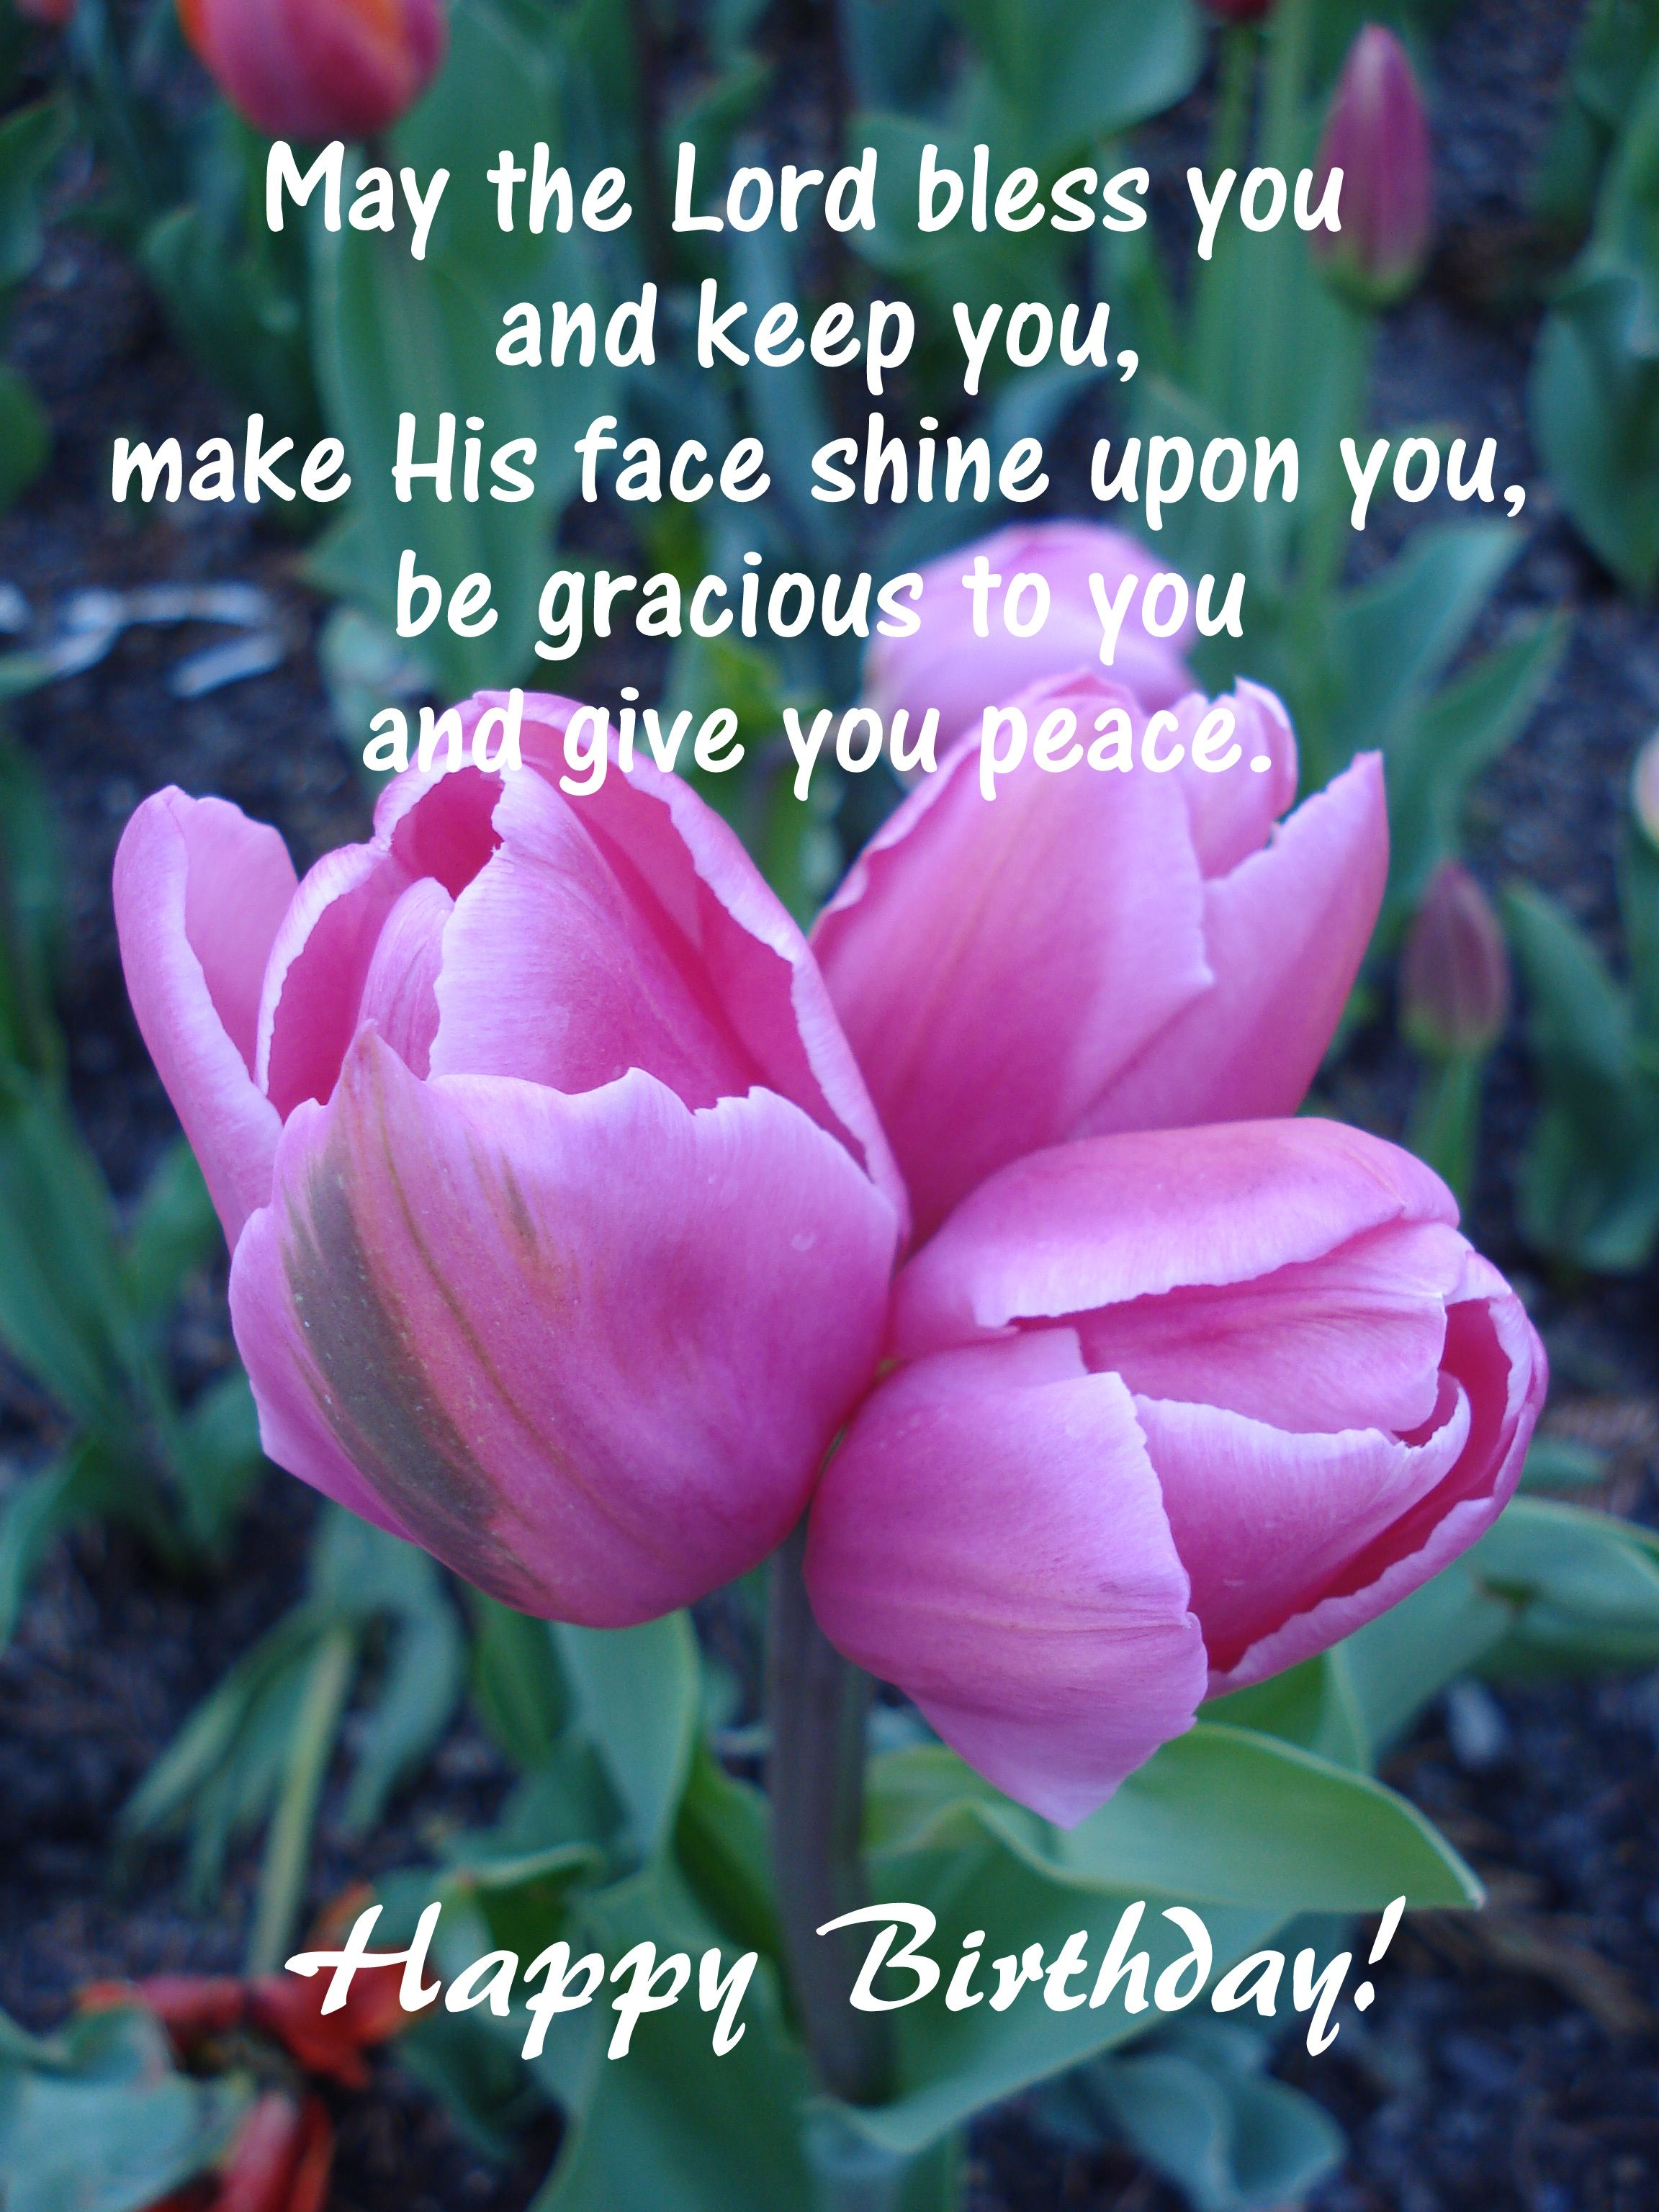 Birthday Wishes Tulips Birthday Blessings Birthday Wishes Wisdom Quotes